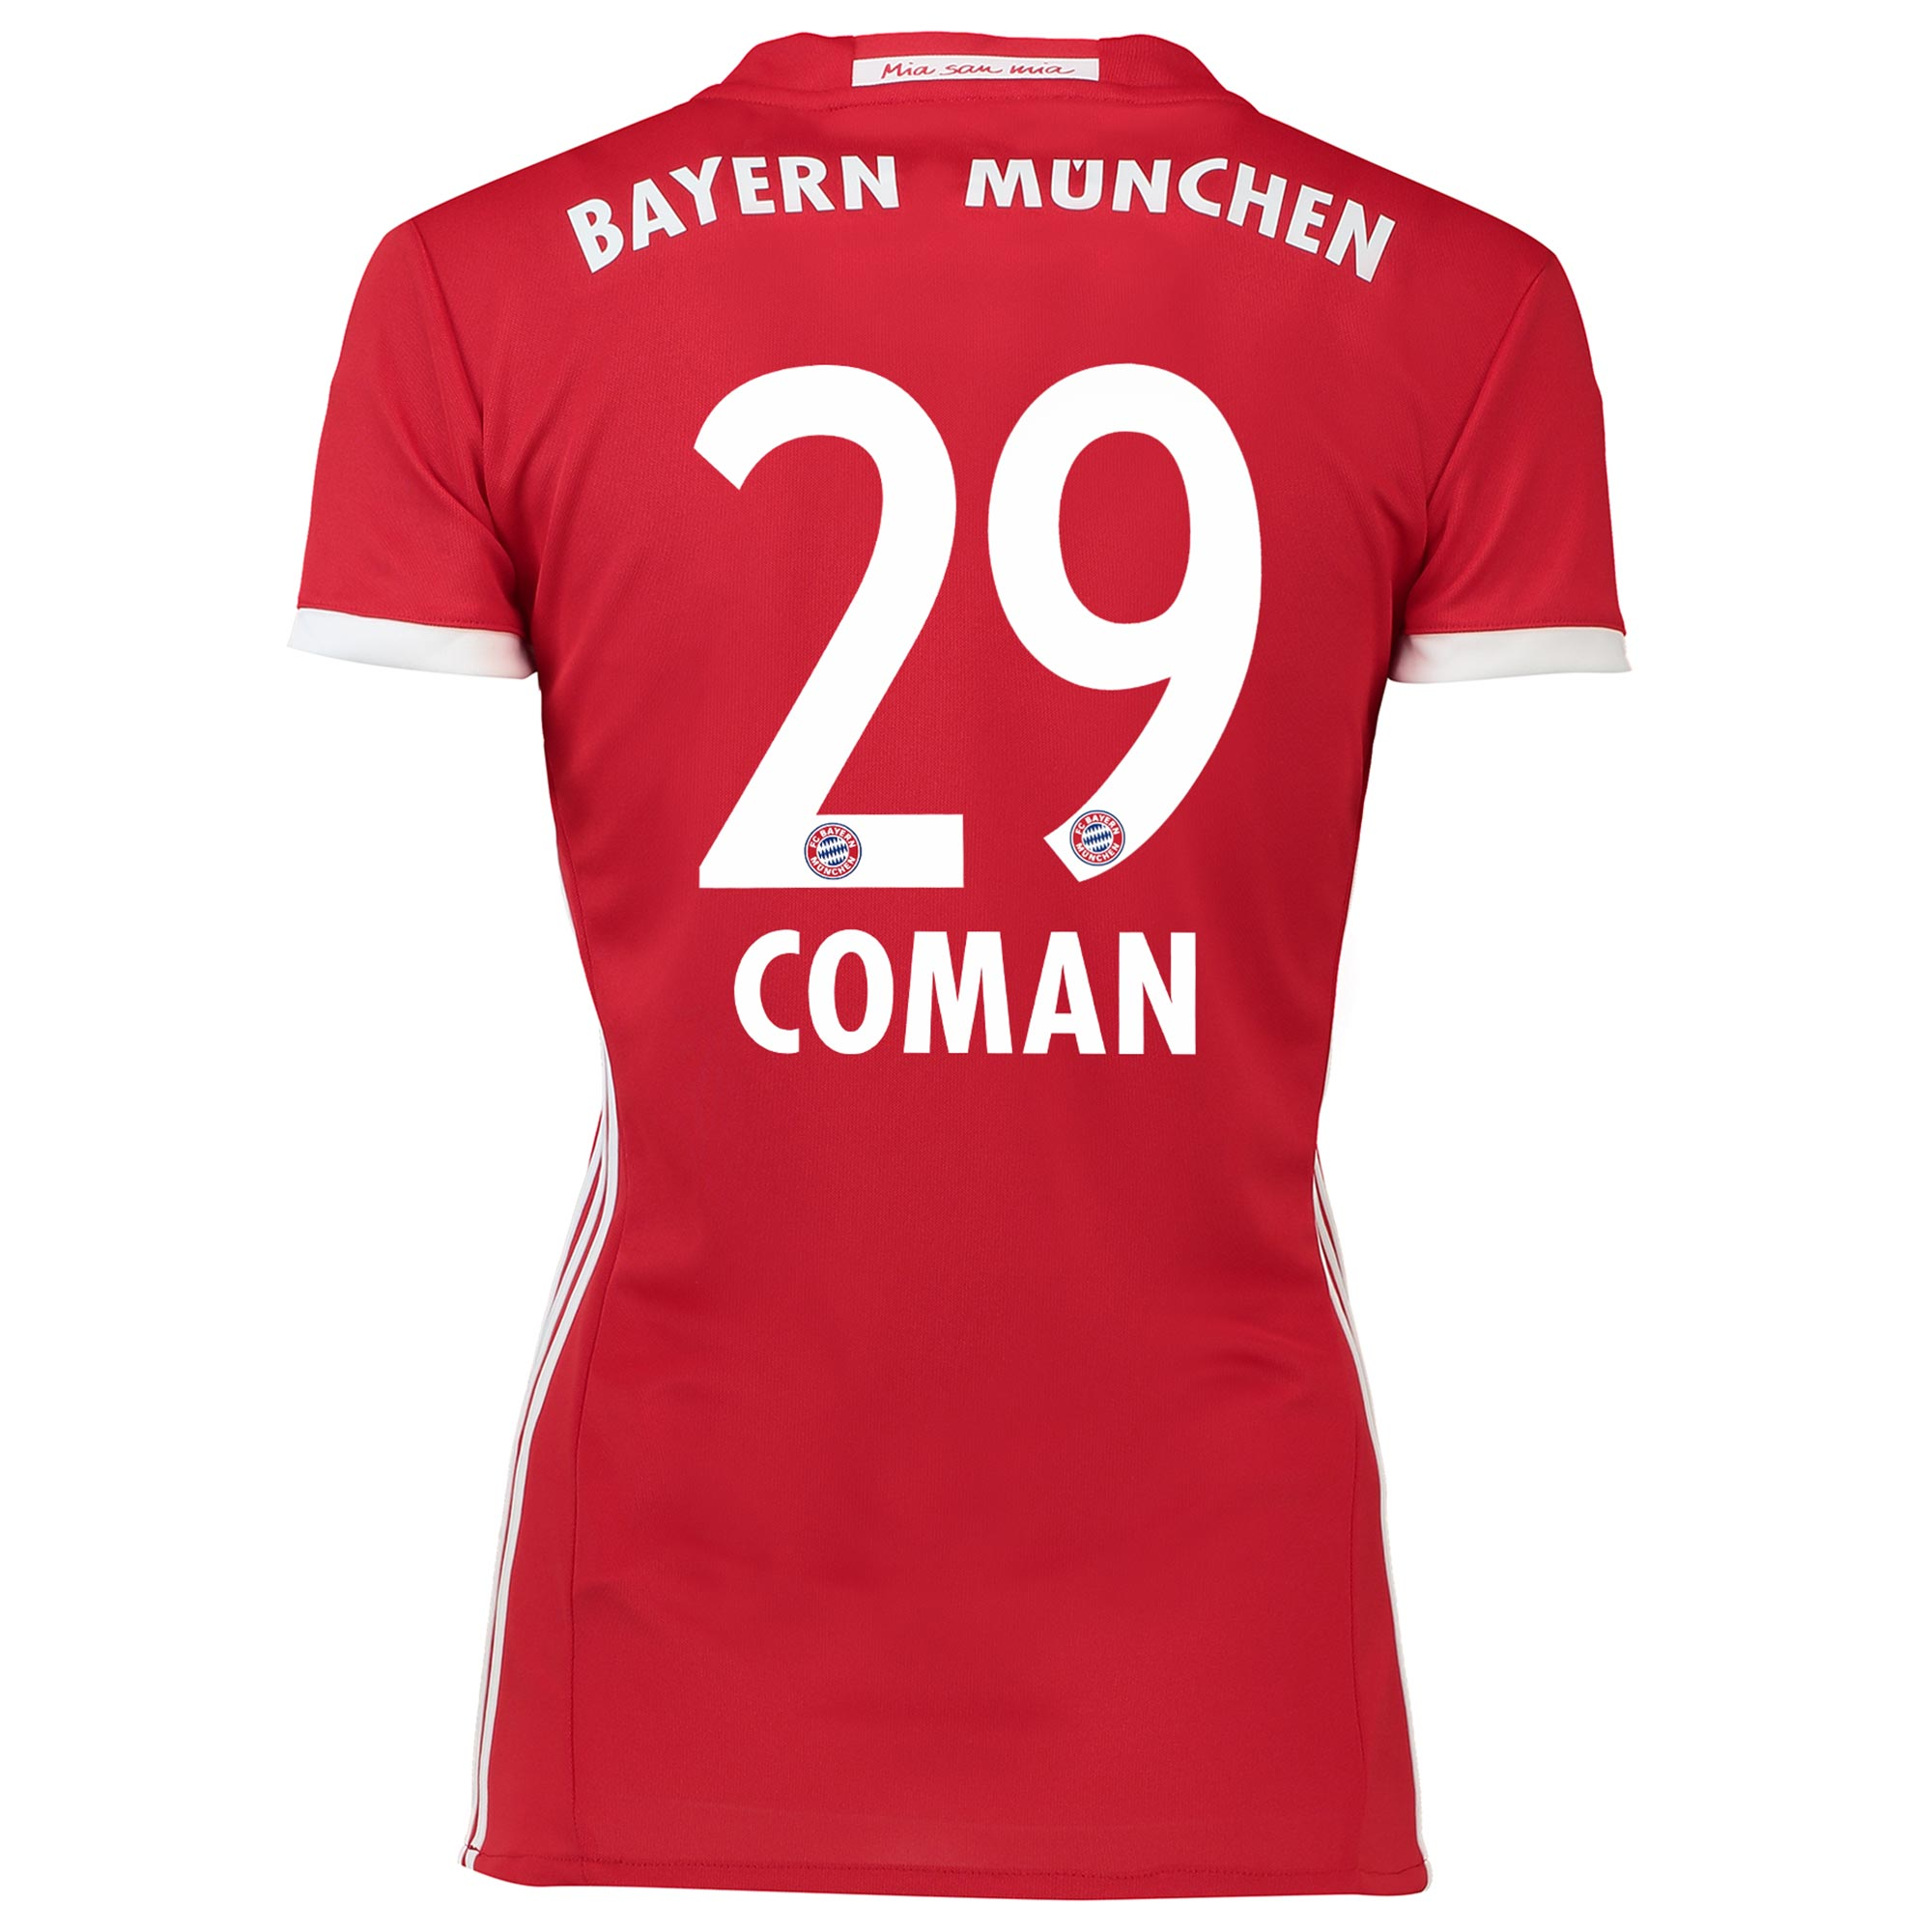 Image of Bayern Munich Home Shirt 2016-17 - Womens with Coman 29 printing, Red